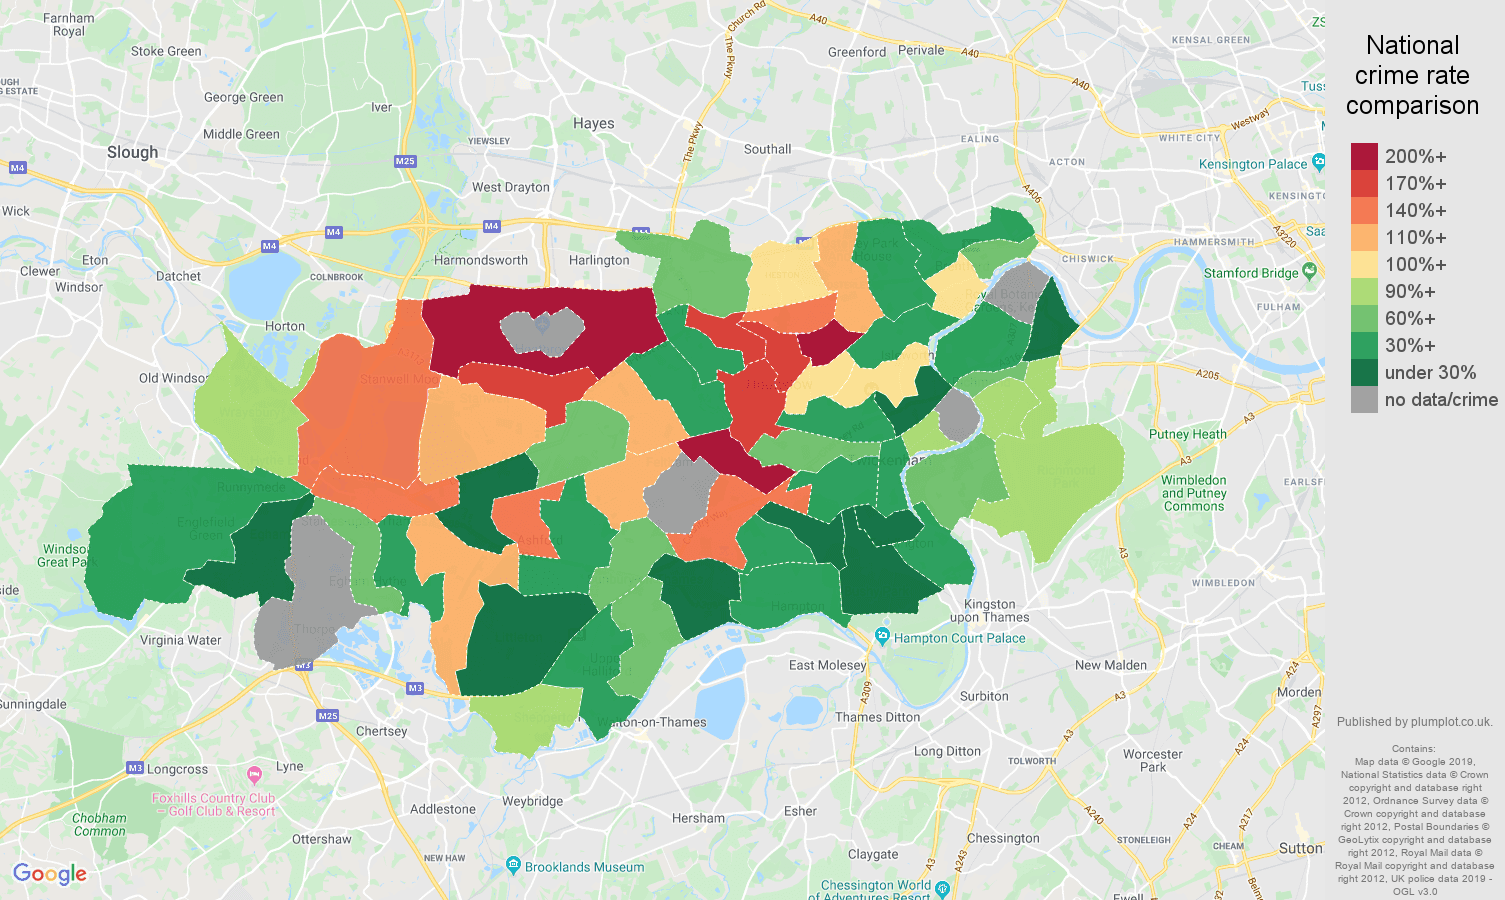 Twickenham possession of weapons crime rate comparison map